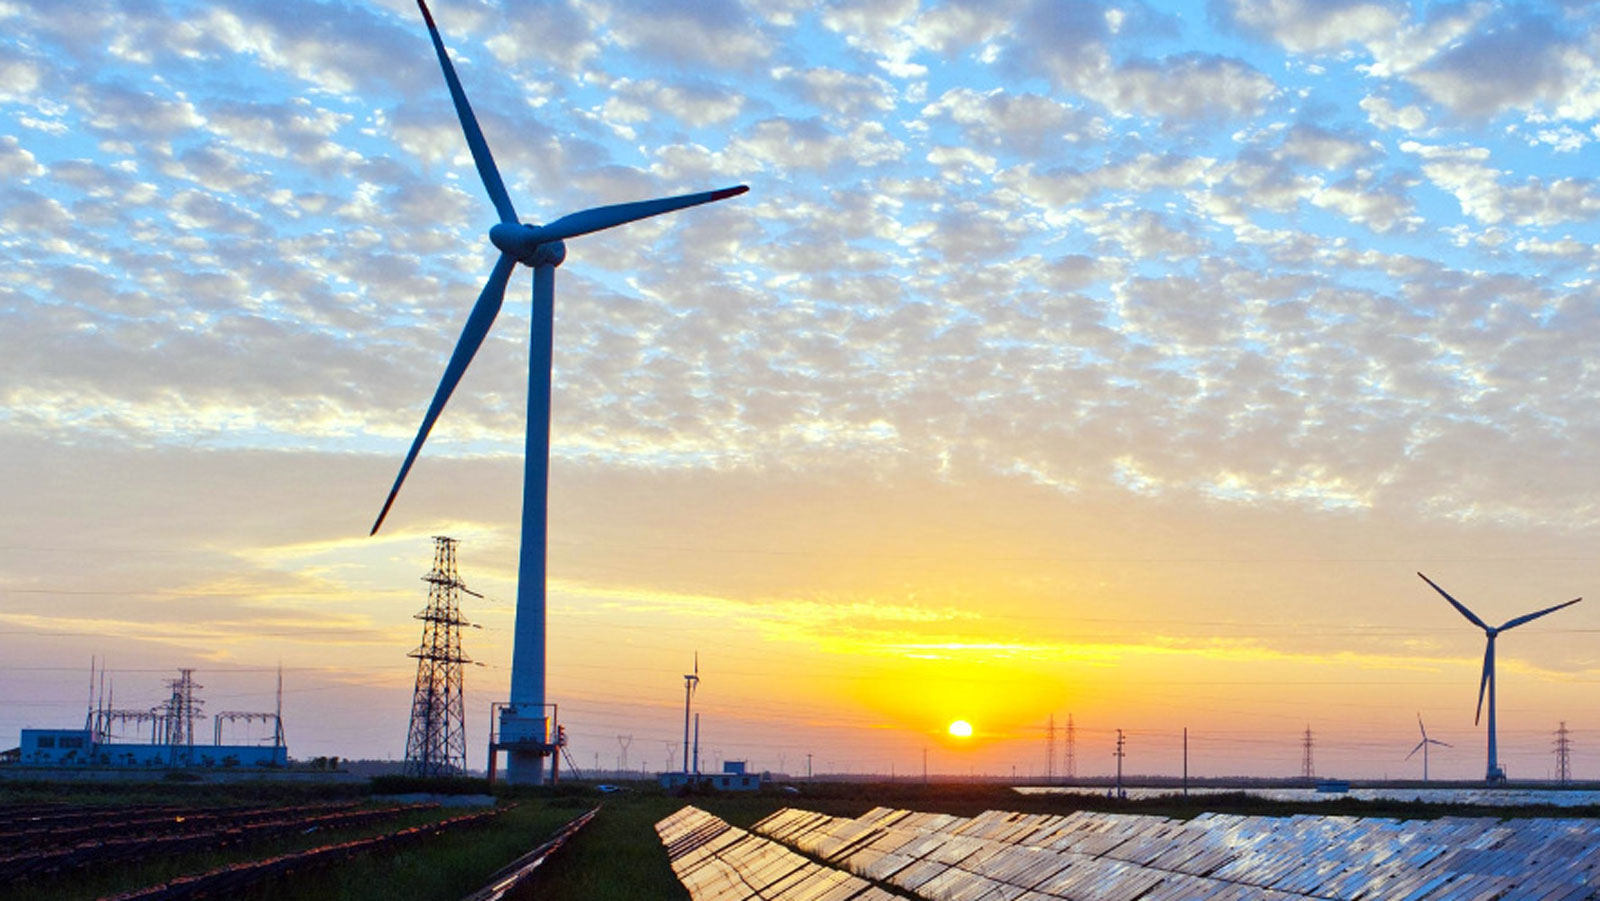 "<h3>WIND ENERGY</h3><h5>America has more than <span class=""slideshowHighlight"">tripled the amount of wind power</span> it produces since 2009, enough to power over 26 million homes.</h5>"